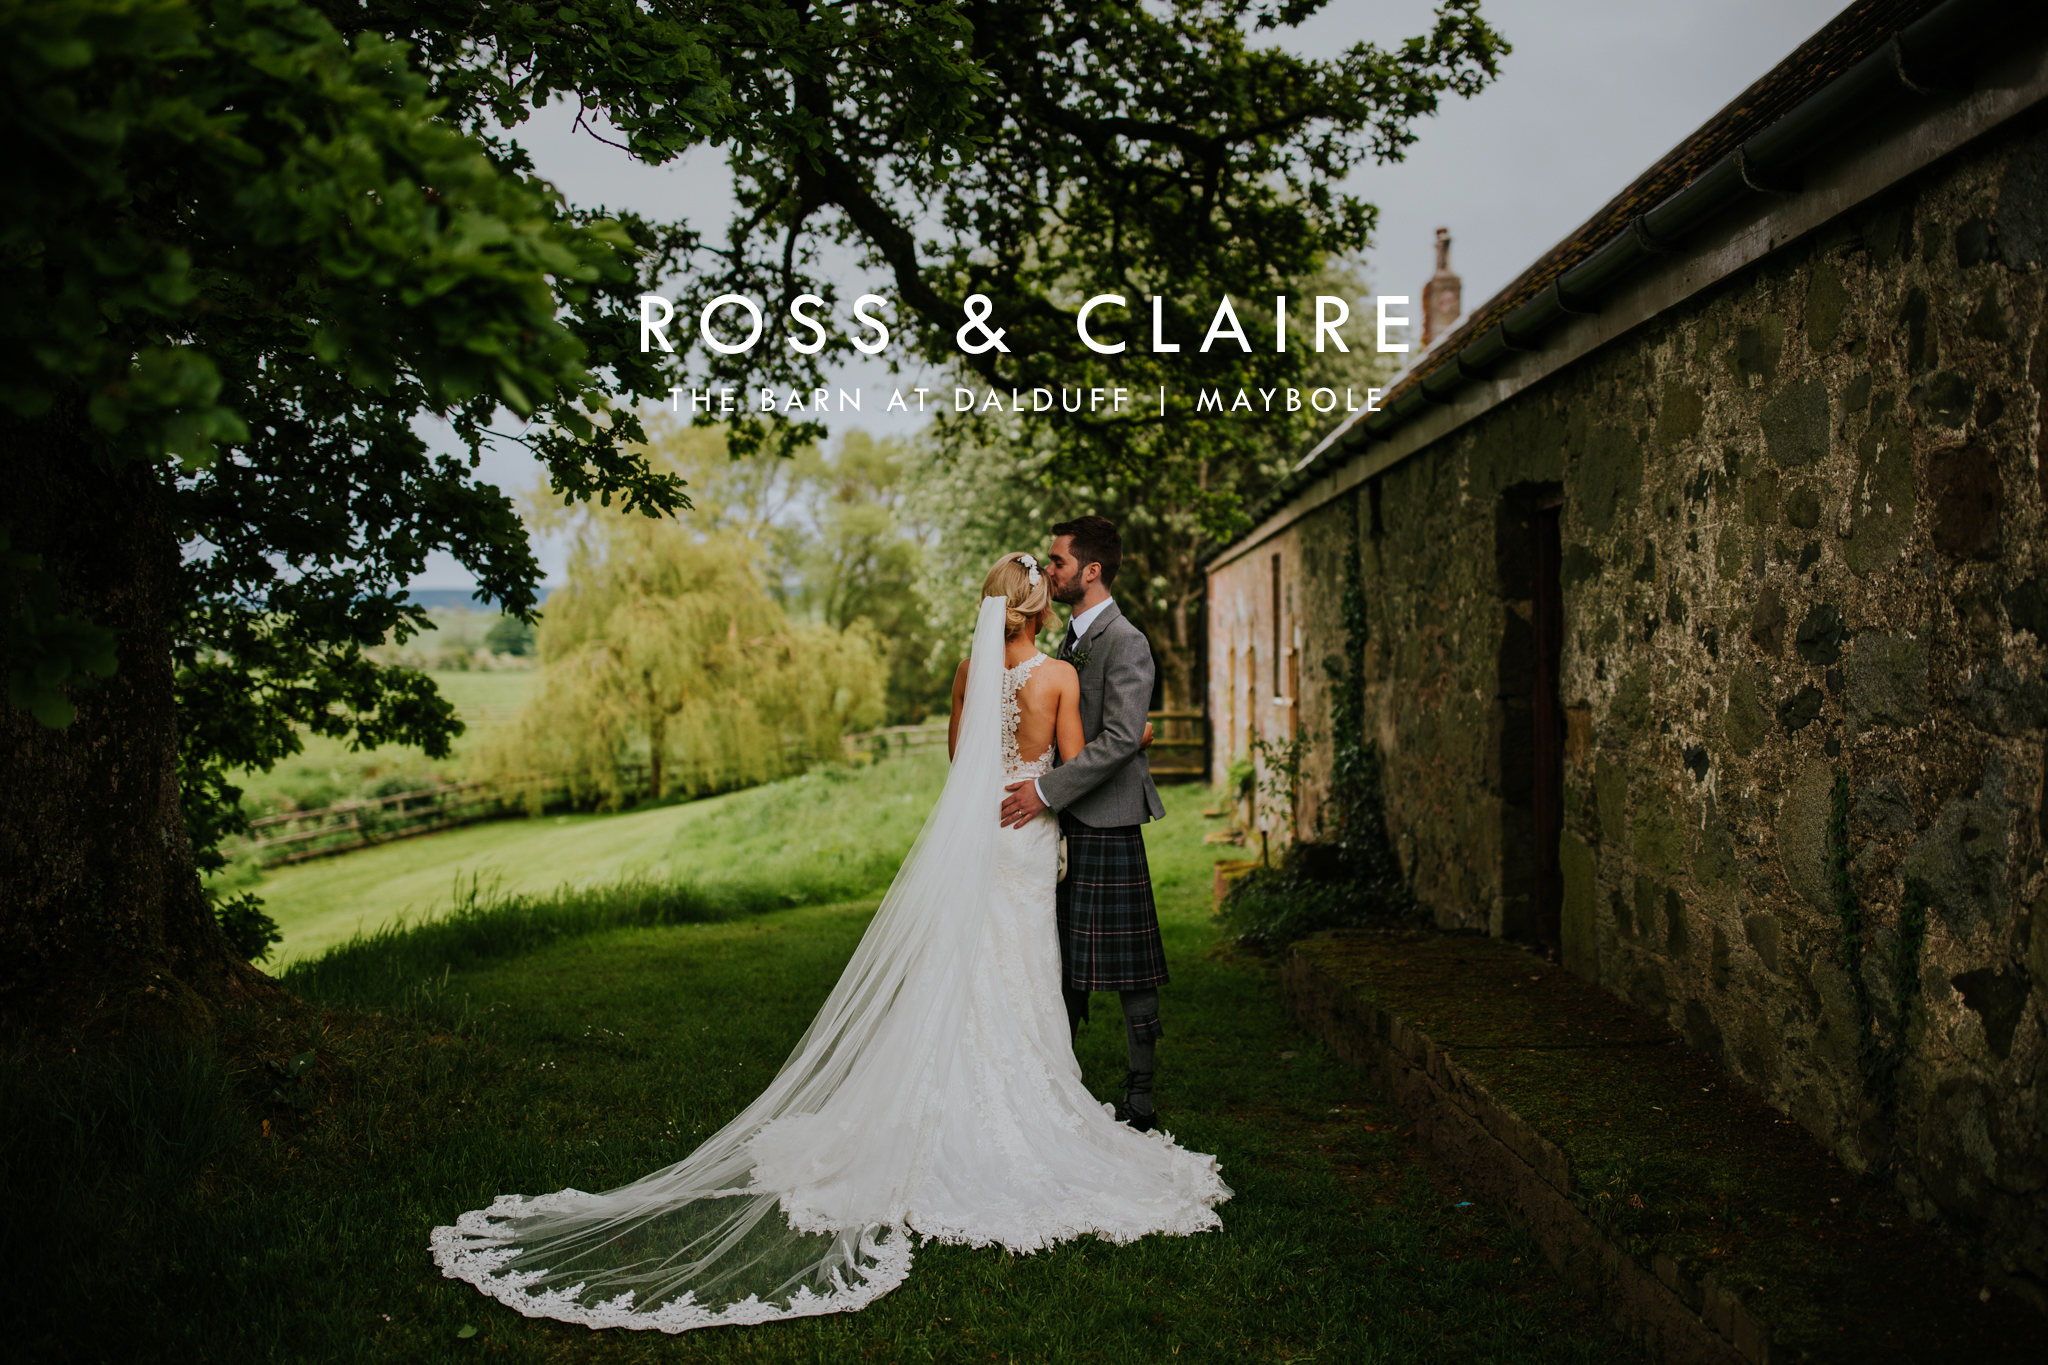 Dalduff Farm wedding photographer